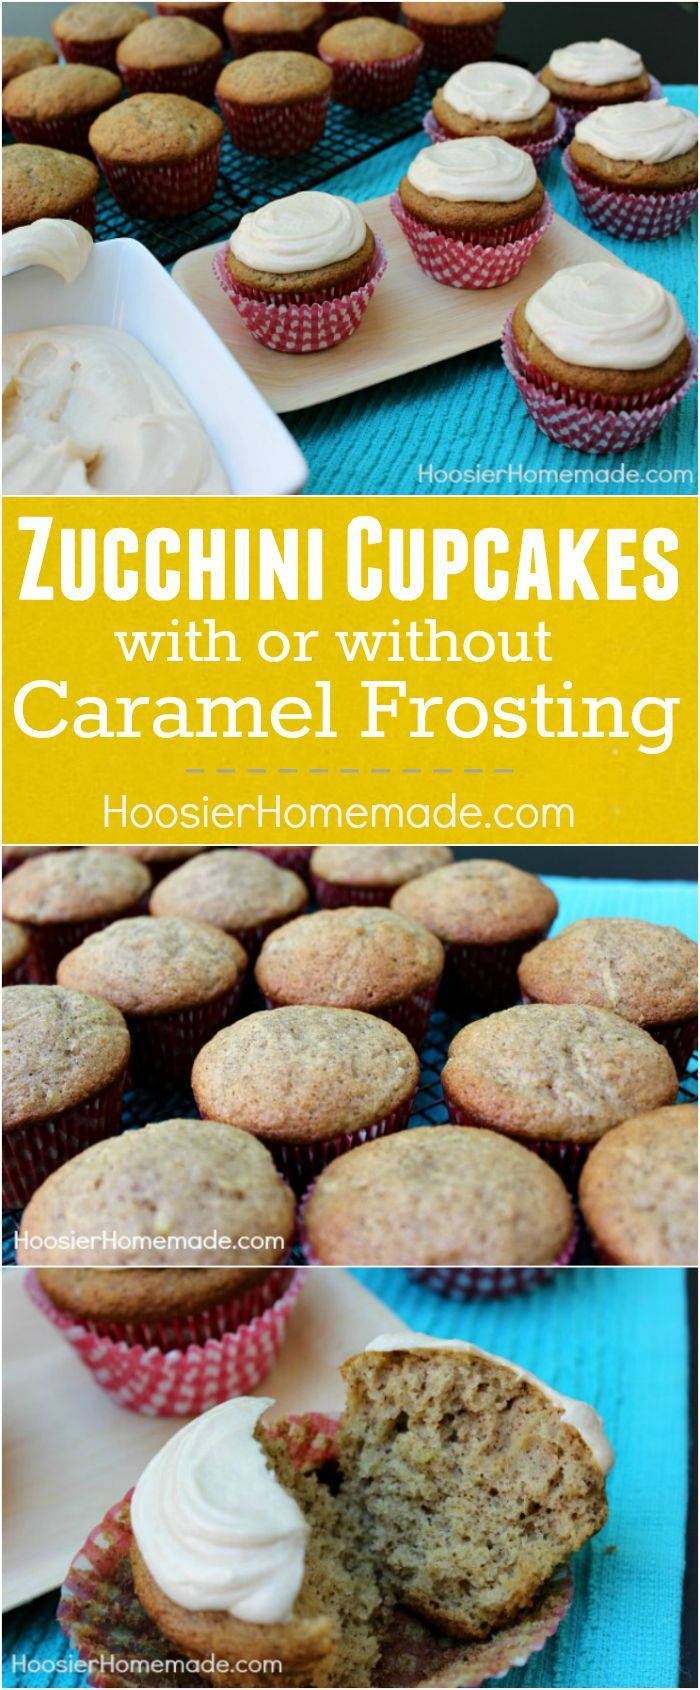 It's that time of year, when our gardens are full of zucchini! Whip up a batch of these Zucchini Cupcakes with Caramel Frosting or leave the frosting off for a delicious breakfast treat! Kids will love them too, and they will never know they have veggies in them! Click on the Photo for the Recipe!